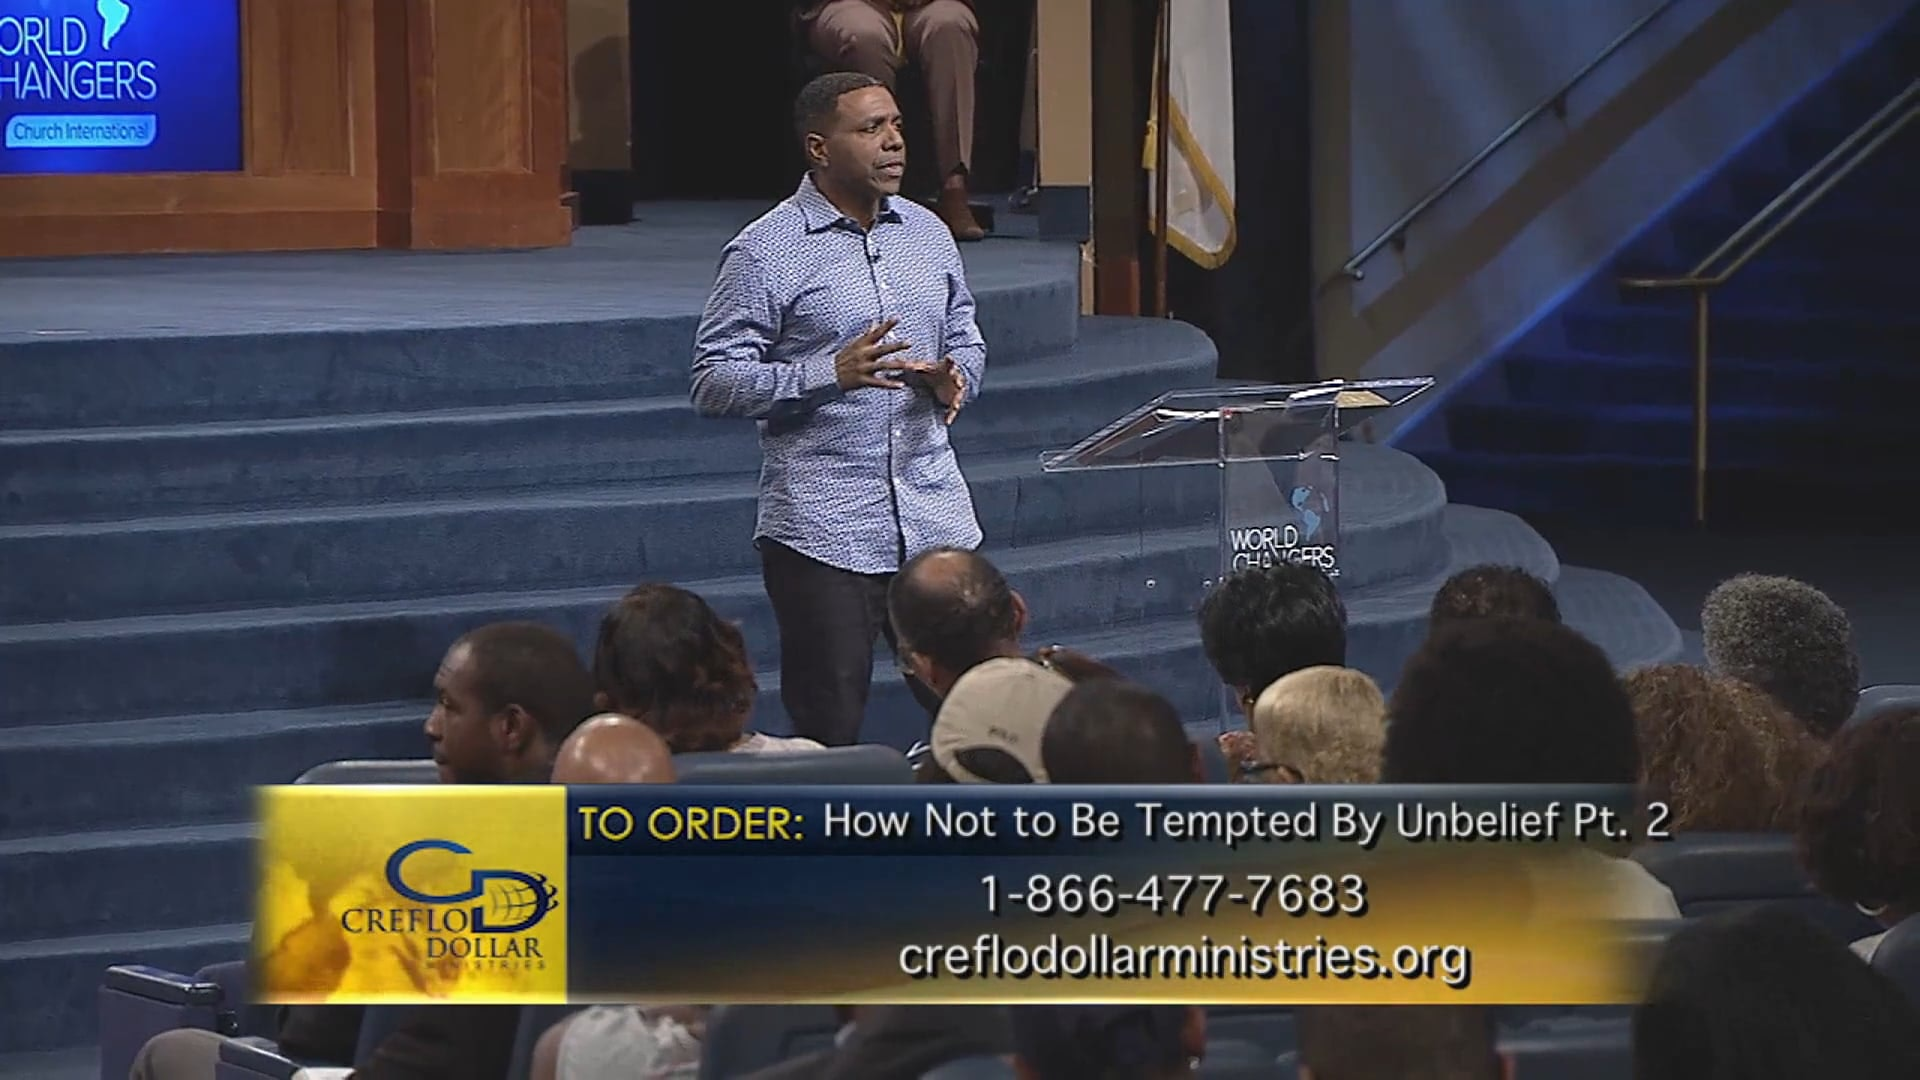 Watch How Not to Be Tempted by Unbelief Part 2